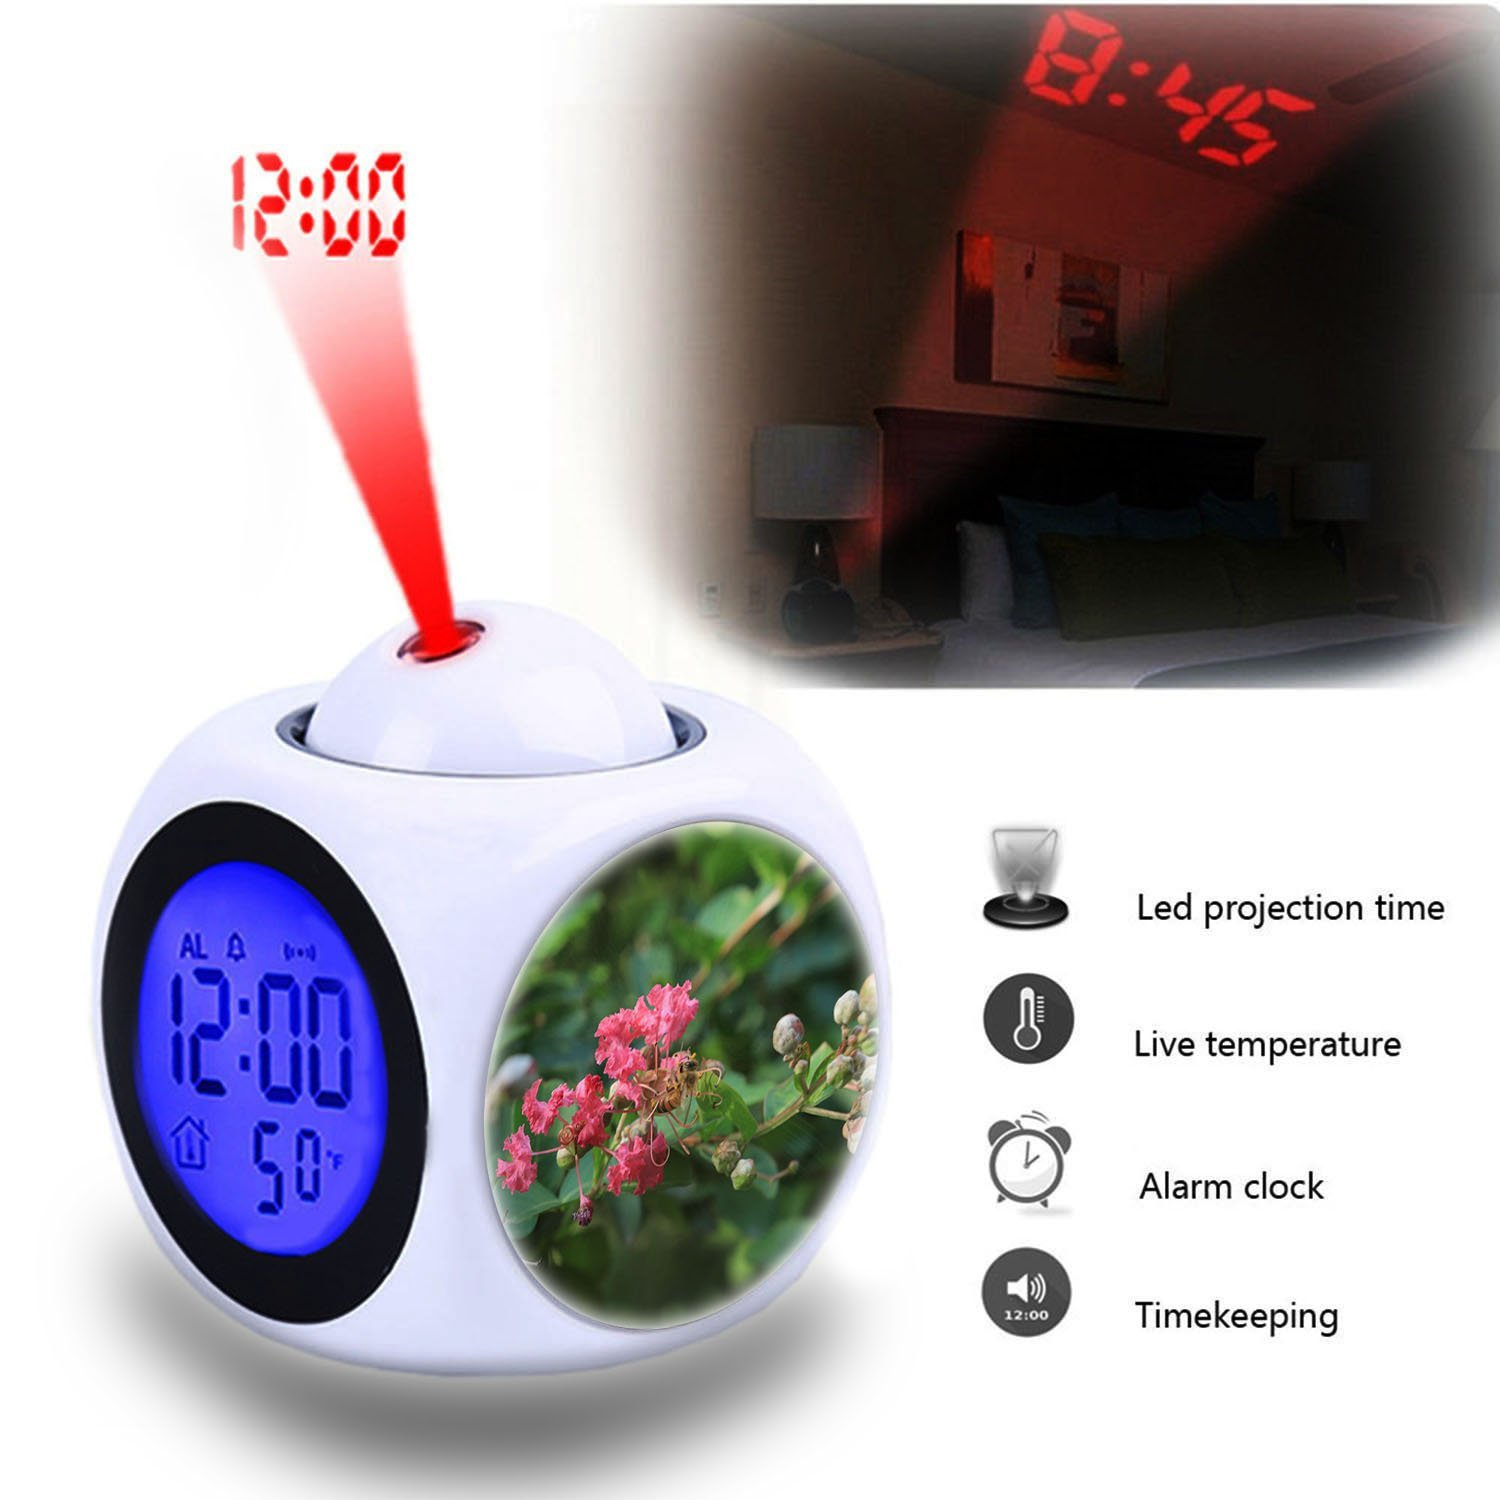 Projection Alarm Clock Wake Up Bedroom with Data and Temperature Display Talking Function, LED Wall/Ceiling Projection,Customize the pattern-062.Bee, Flower, Honey, Pink, Red, Plant, Plants, Tree